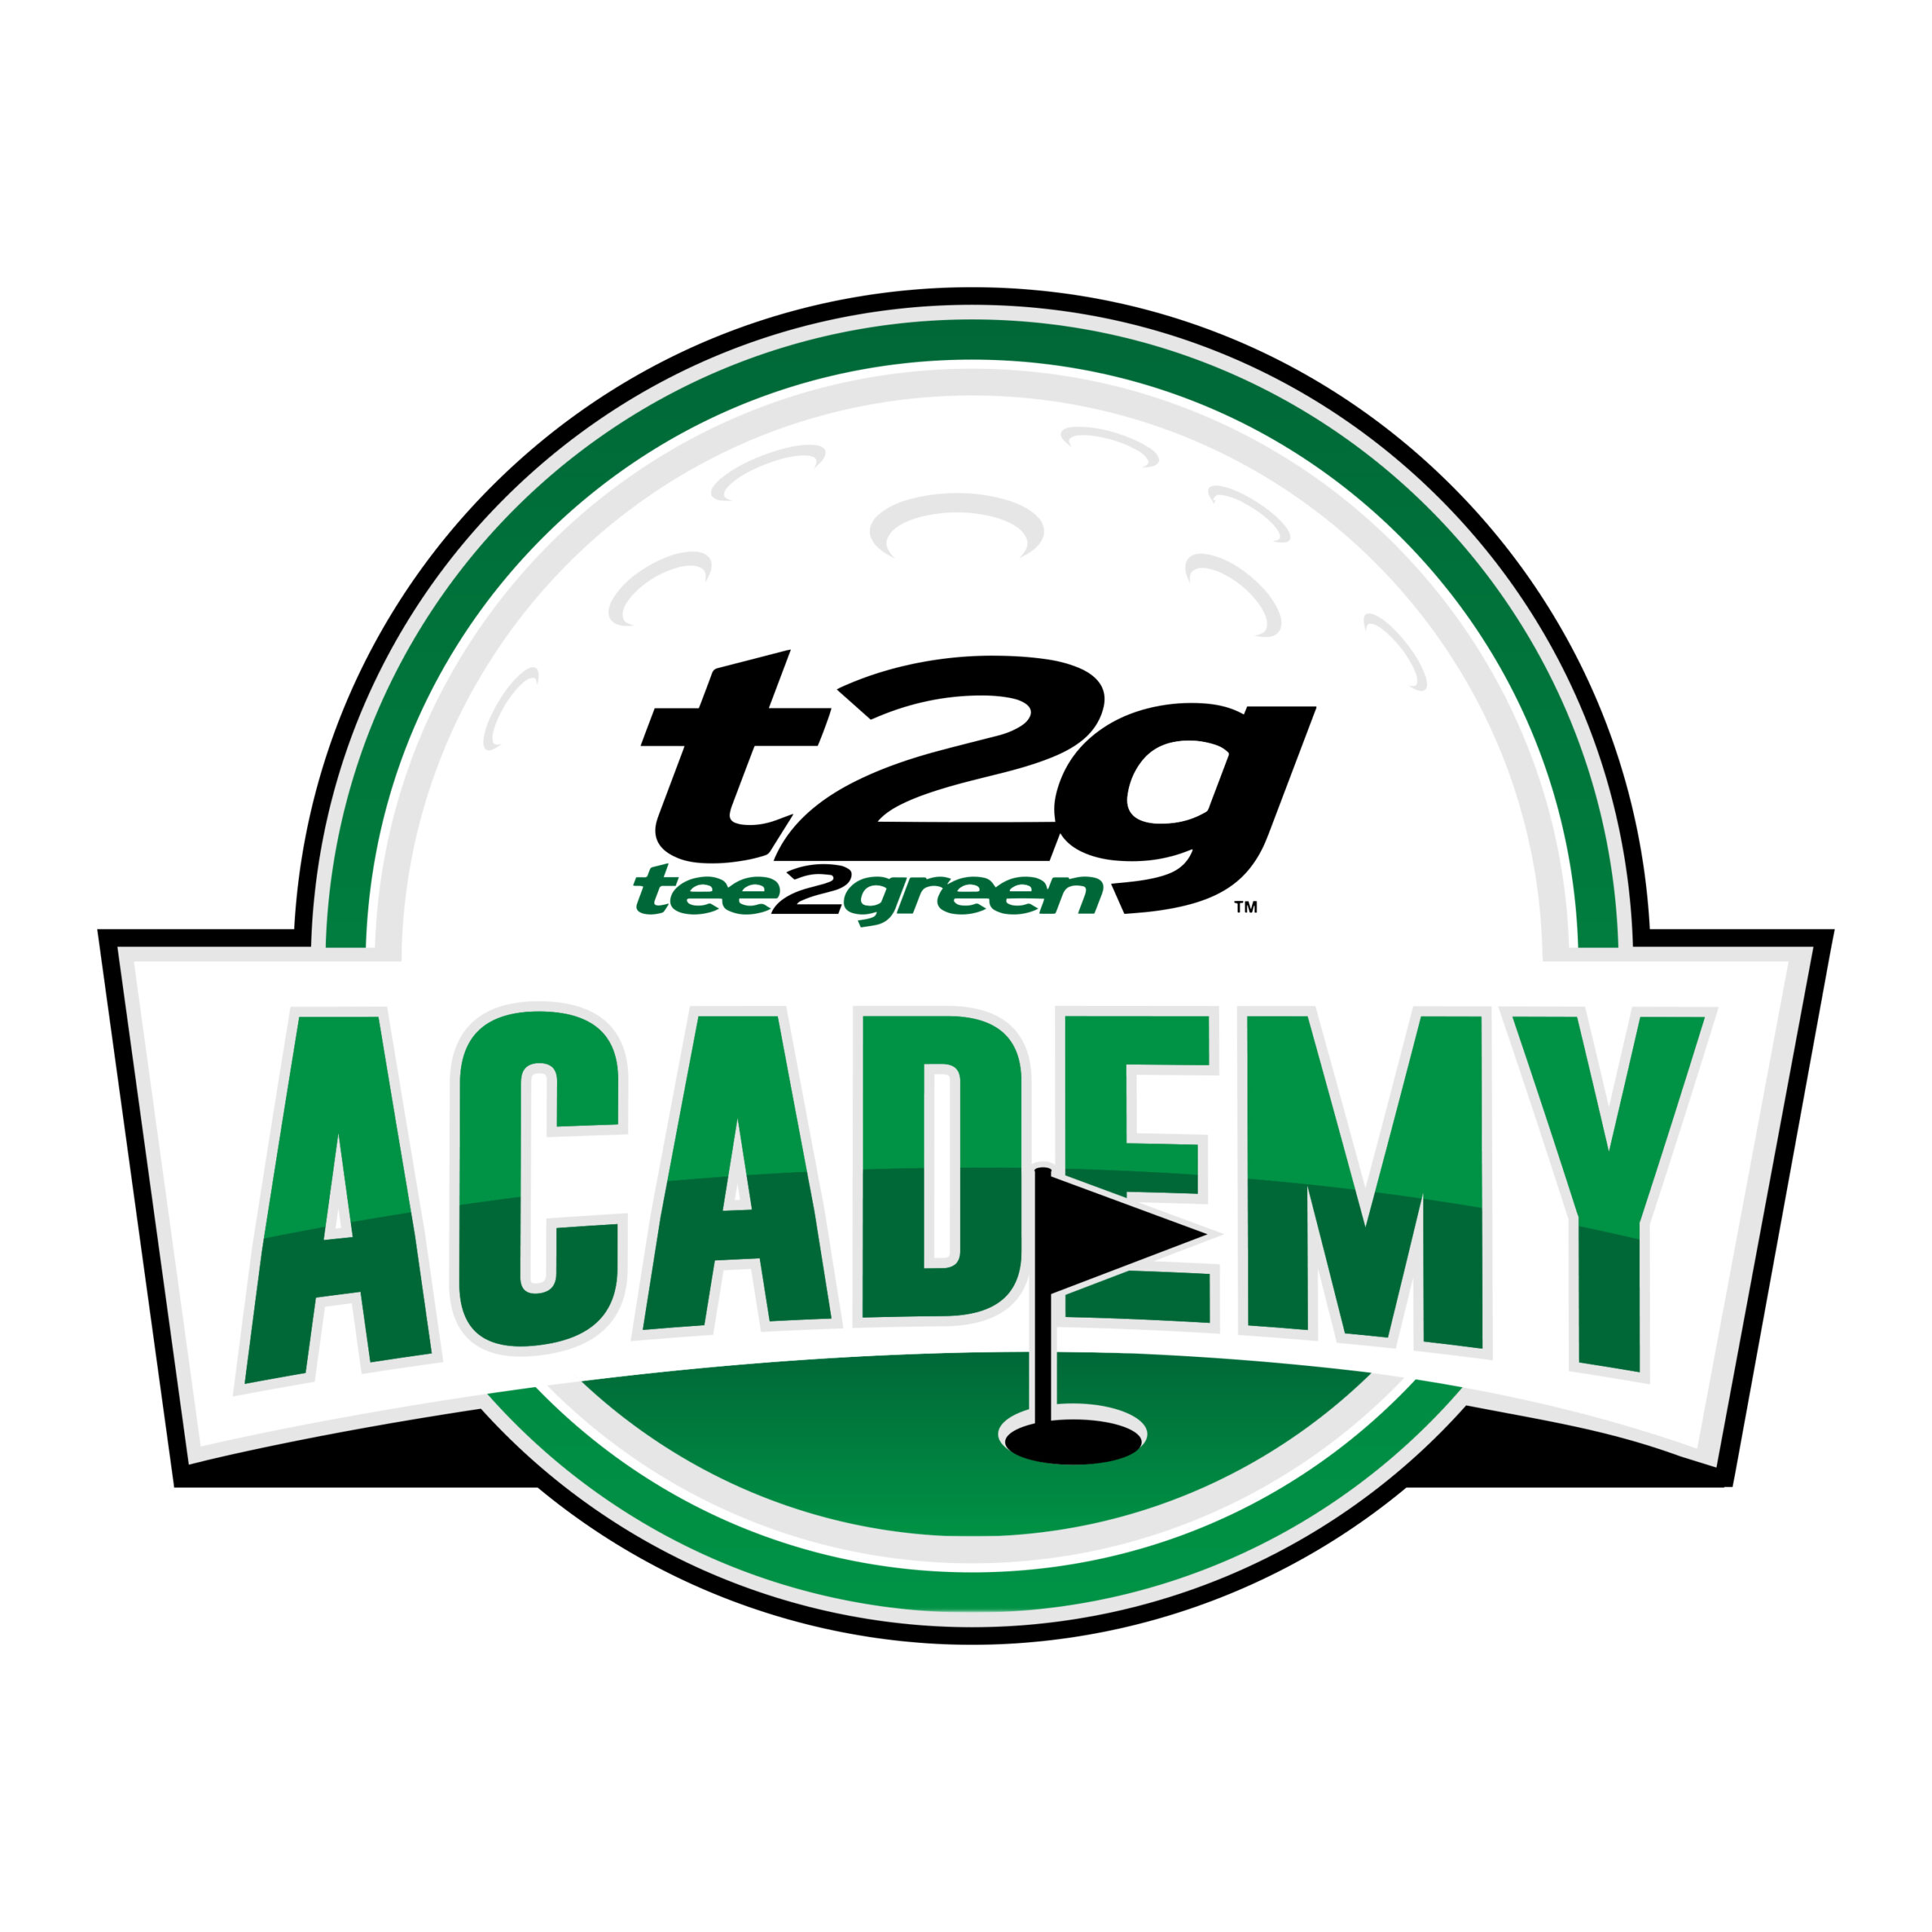 T2G Academy logo - Black outline